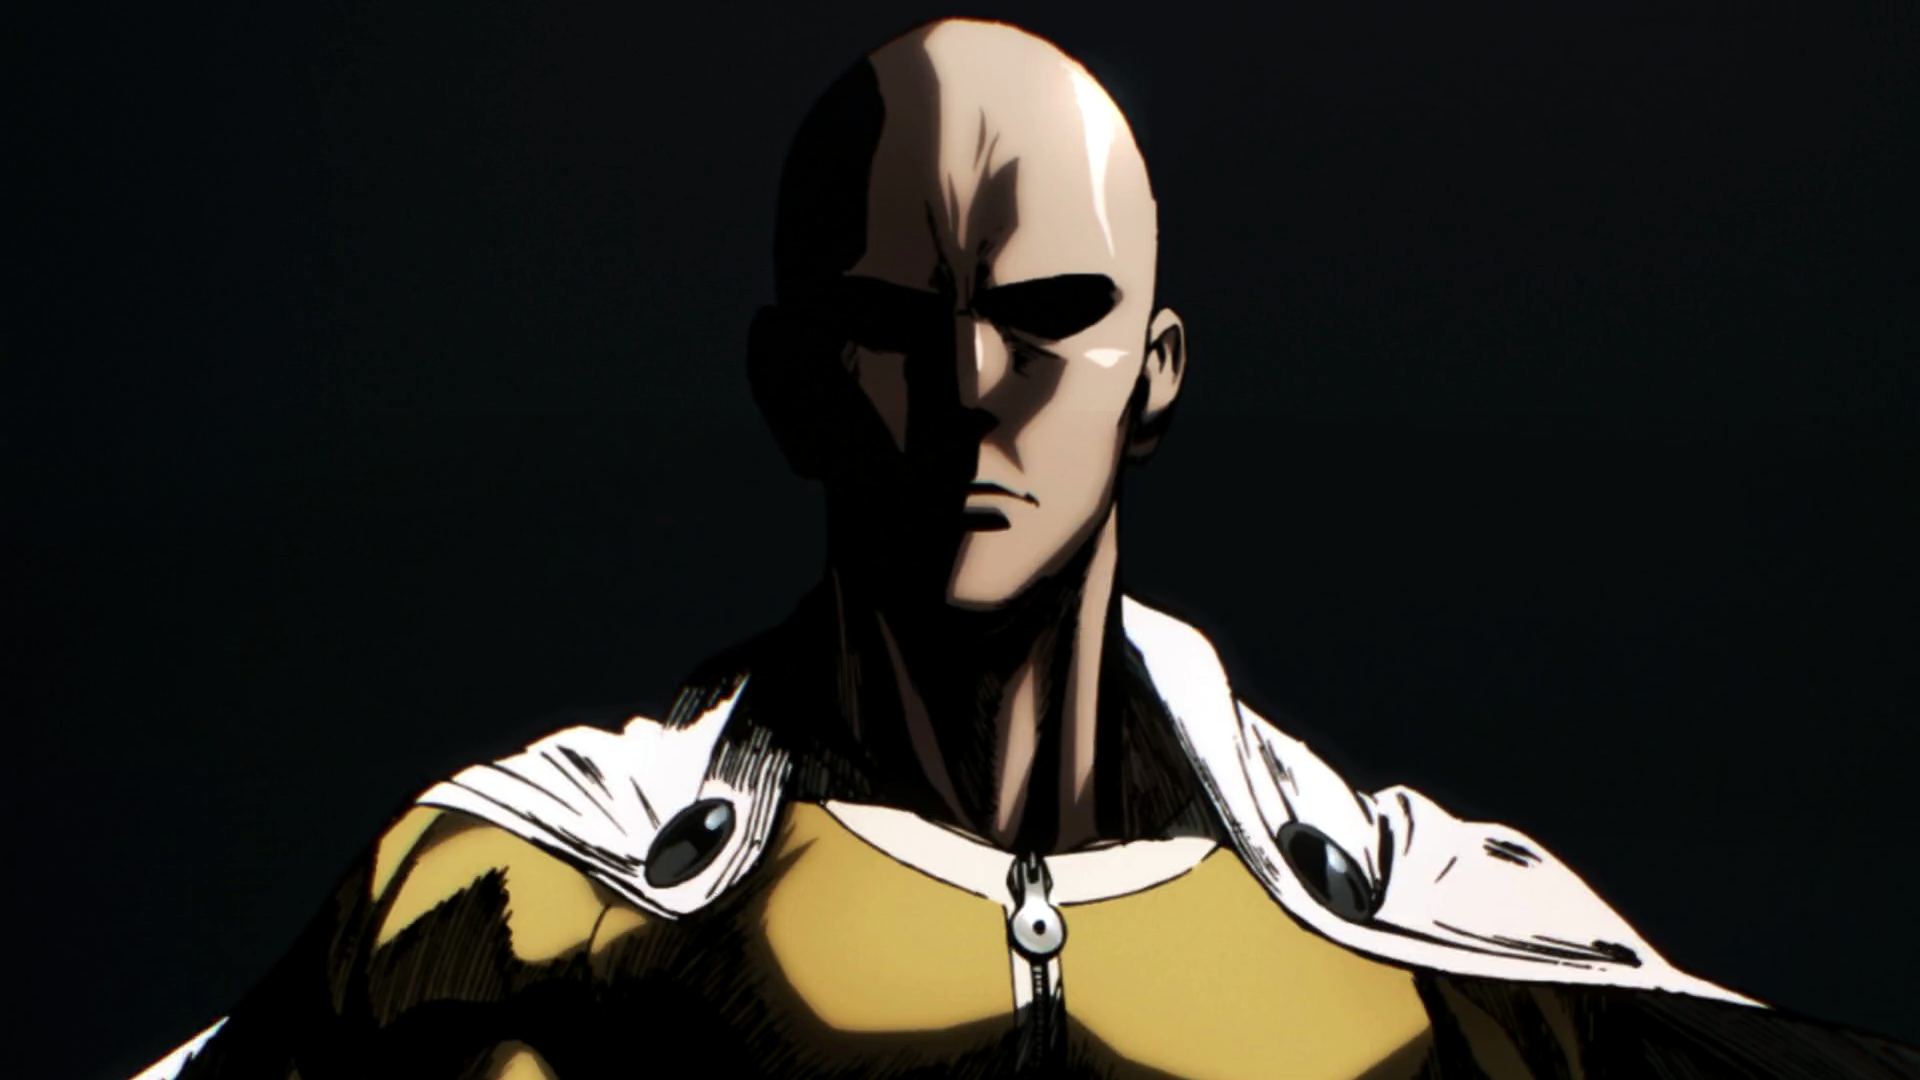 One Punch Man Background Is Cool Wallpapers